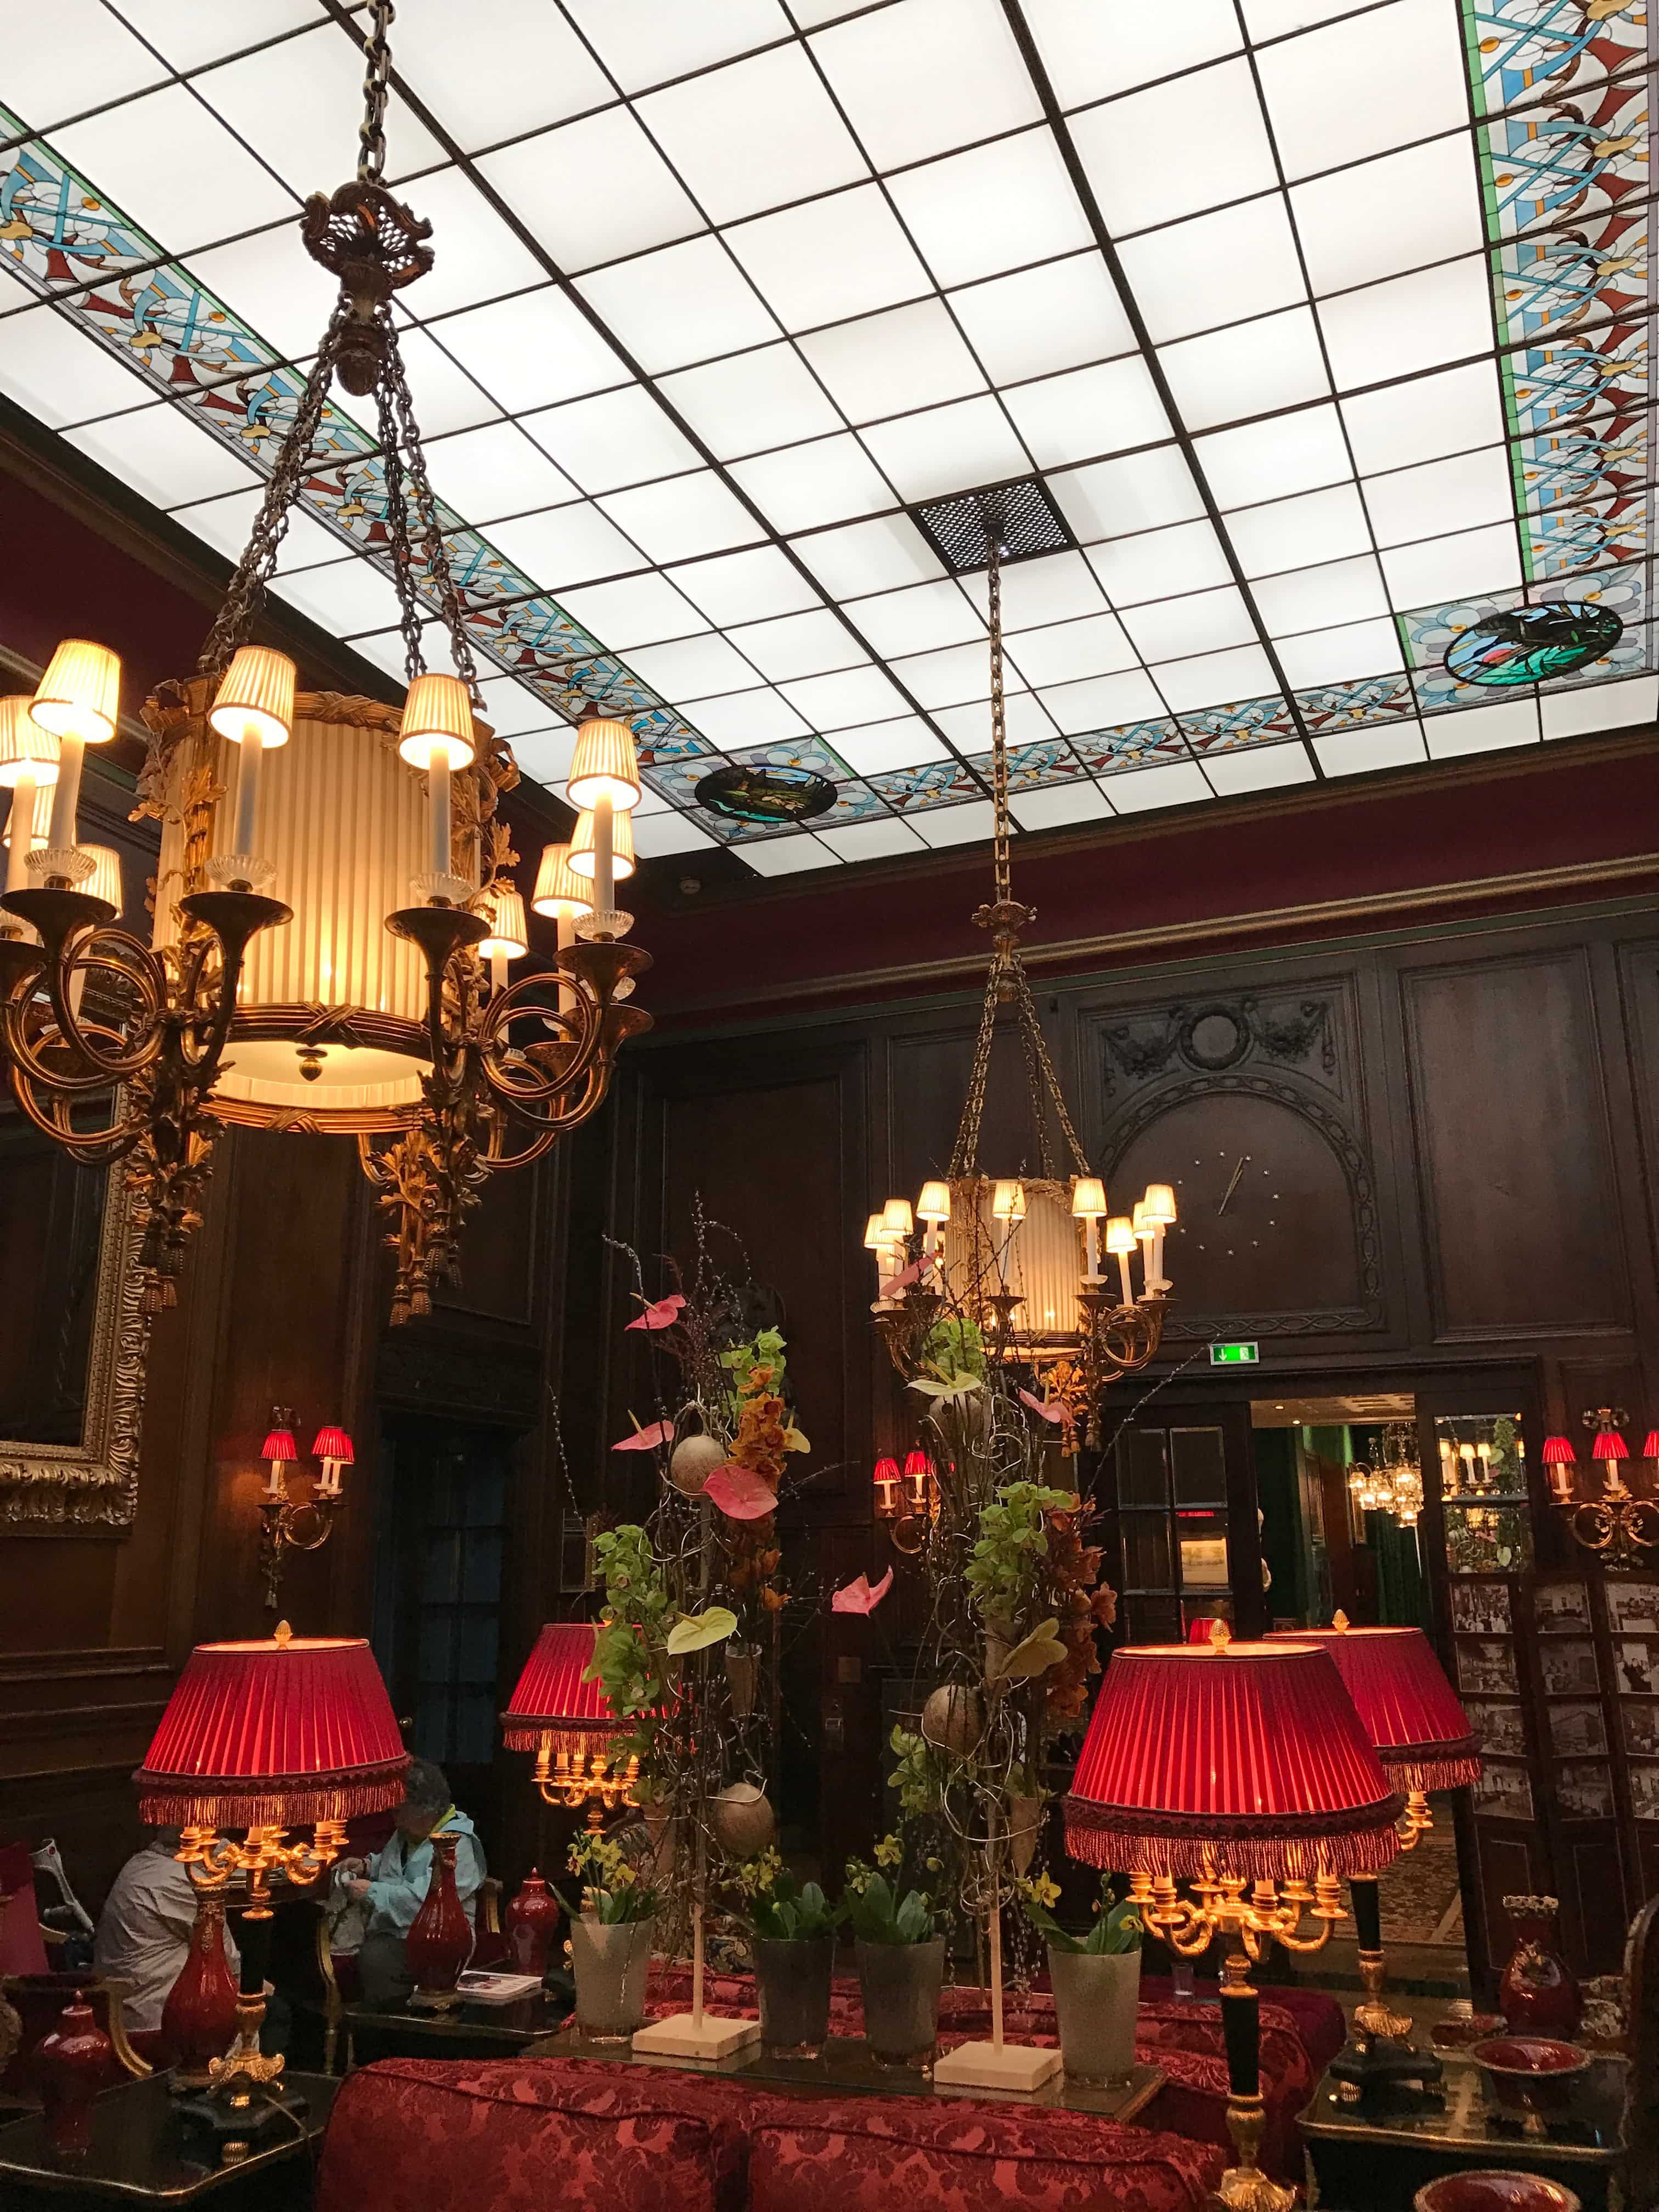 A stay at Hotel Sacher in Vienna 4